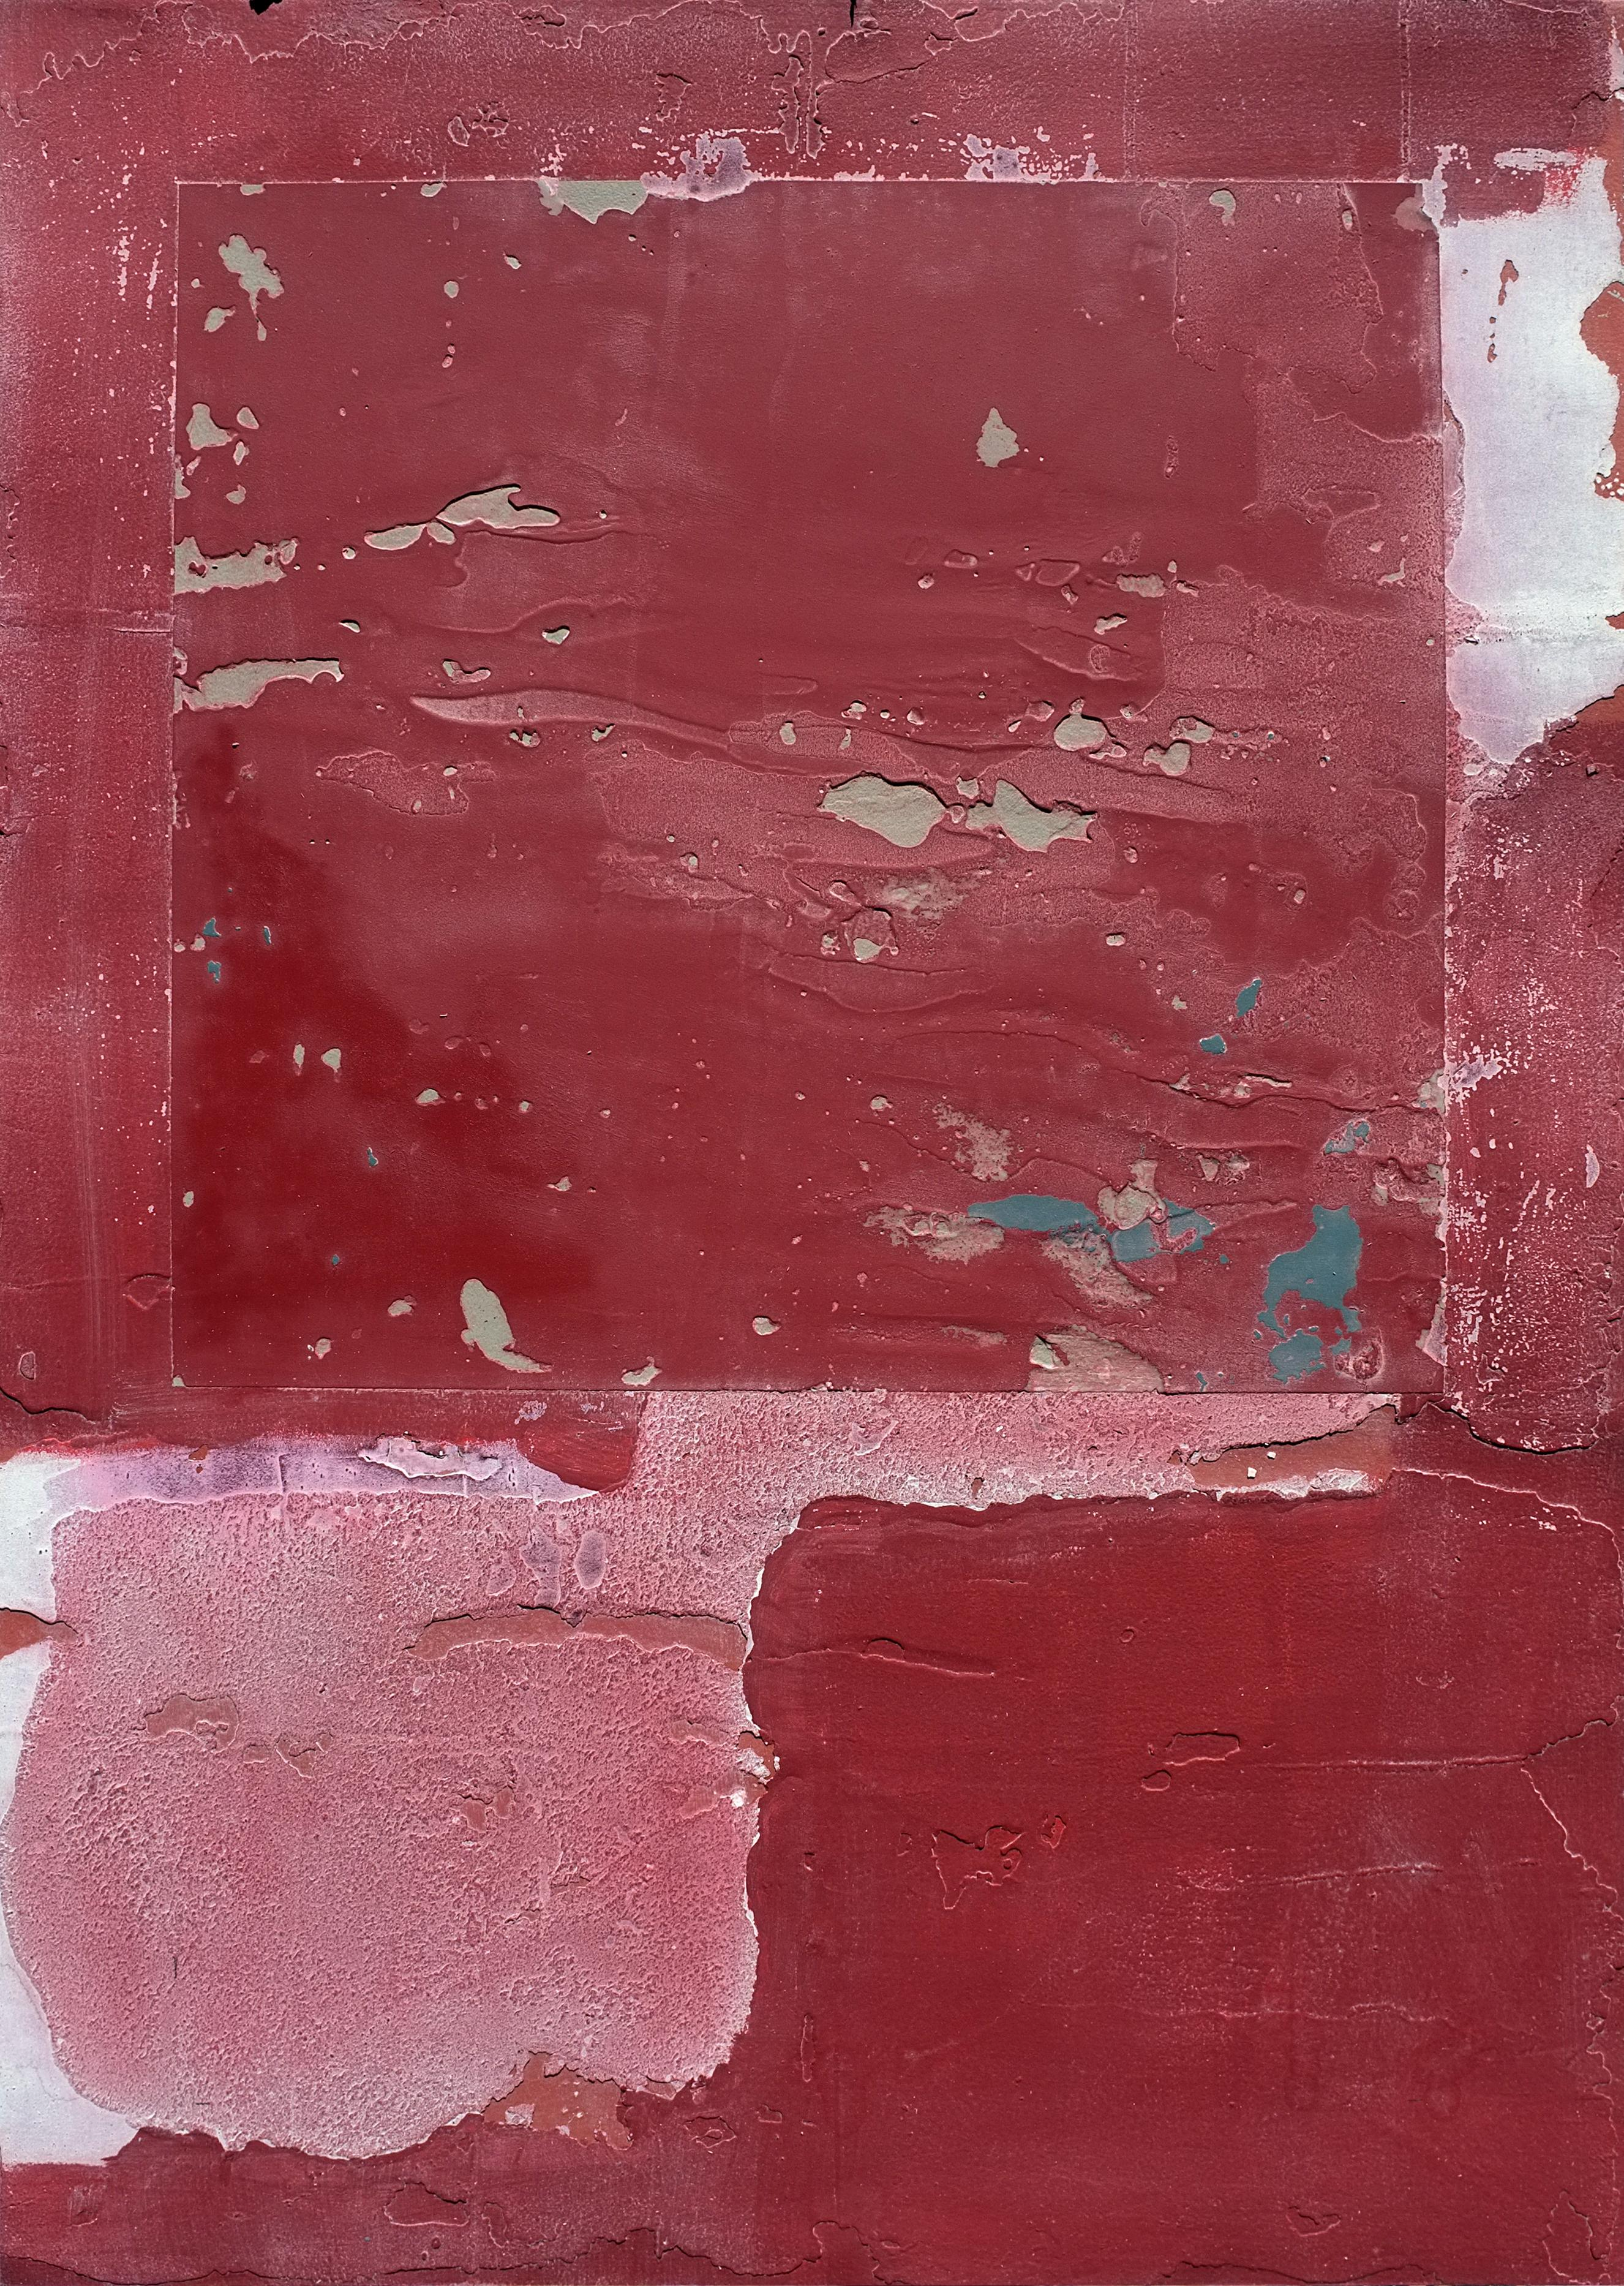 ZL, Contemporary Minimalist Abstract Art Mixed Media Small Red Red Collage Paper